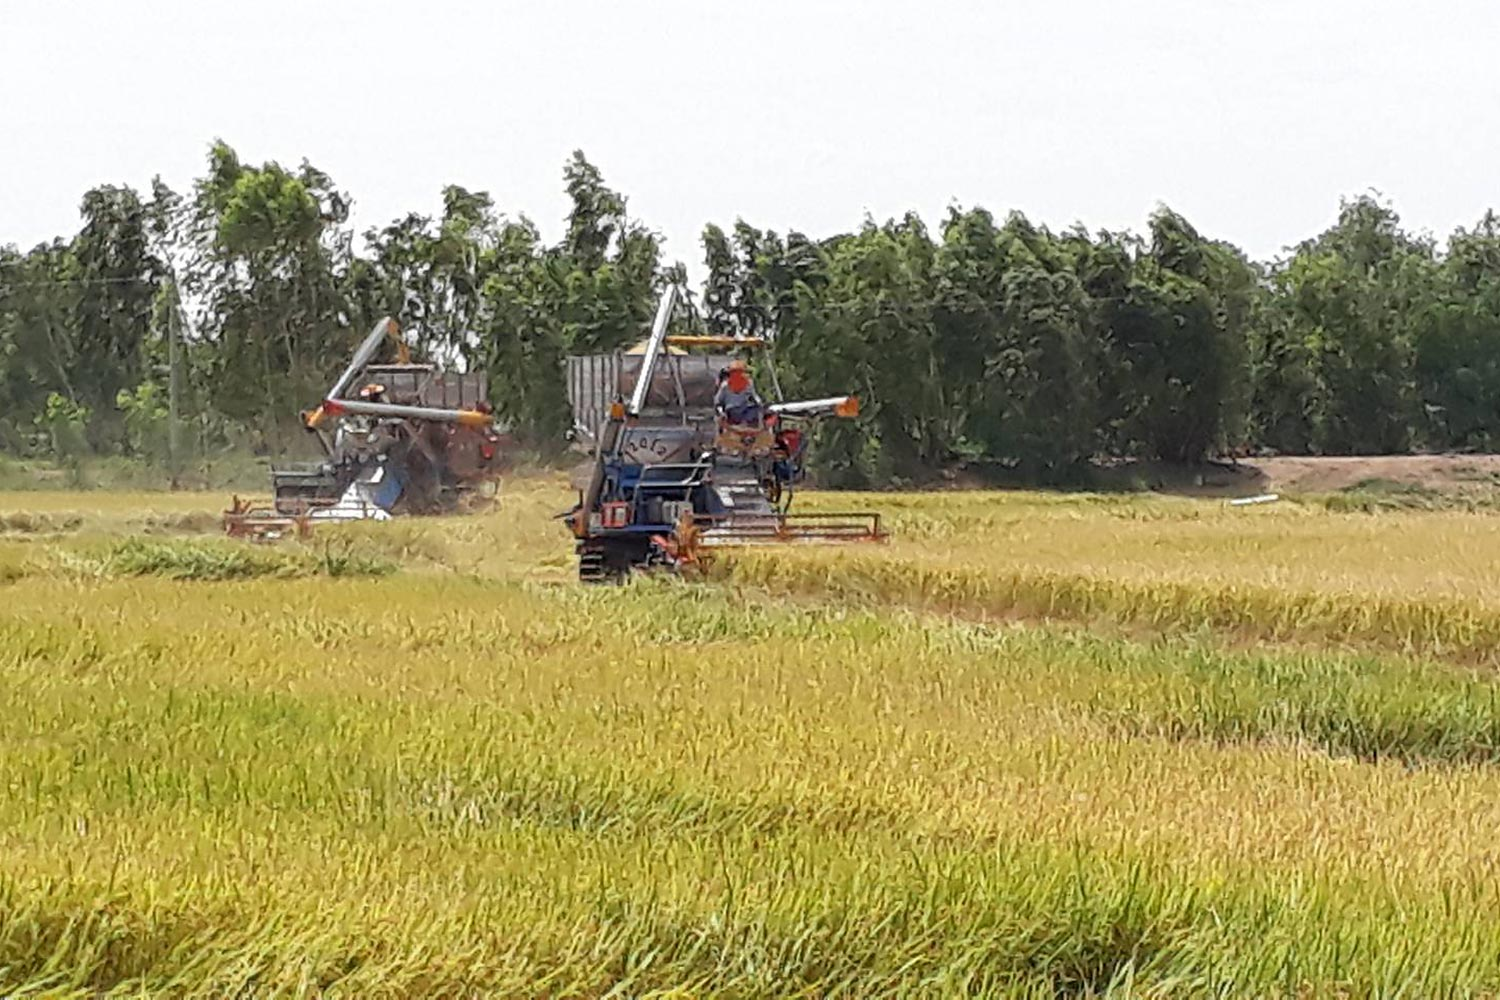 The rice pledging scheme for rice farmers, running from 2011 to 2014, was the largest rice market intervention scheme in Thai history.(Photo by Sunthorn Pongpao)